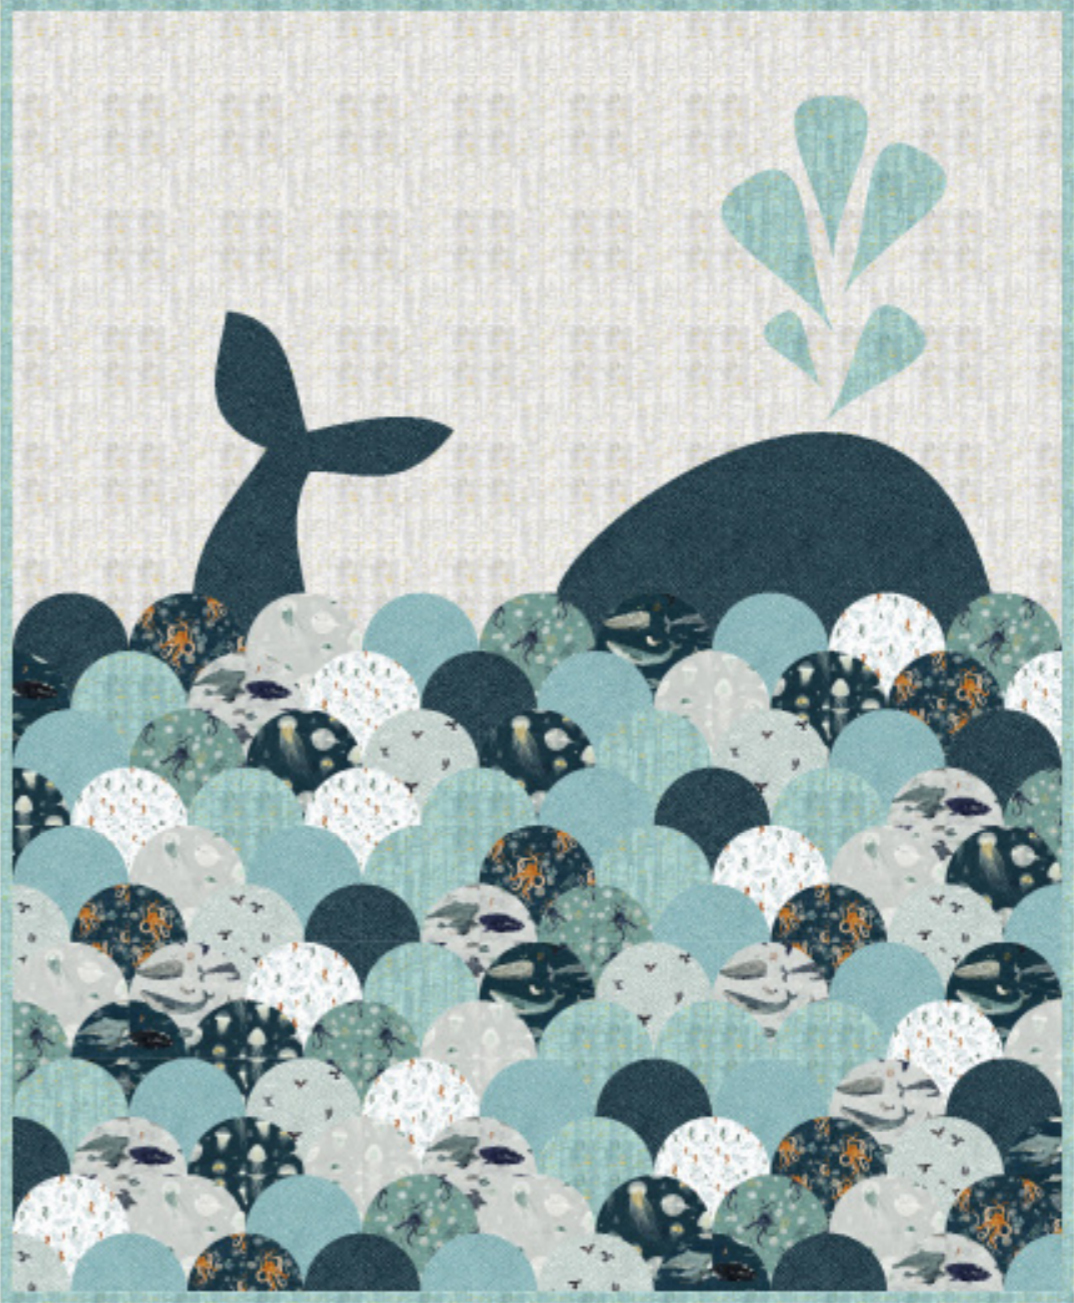 Free Whale Sighting Quilt Pattern uses uncorked